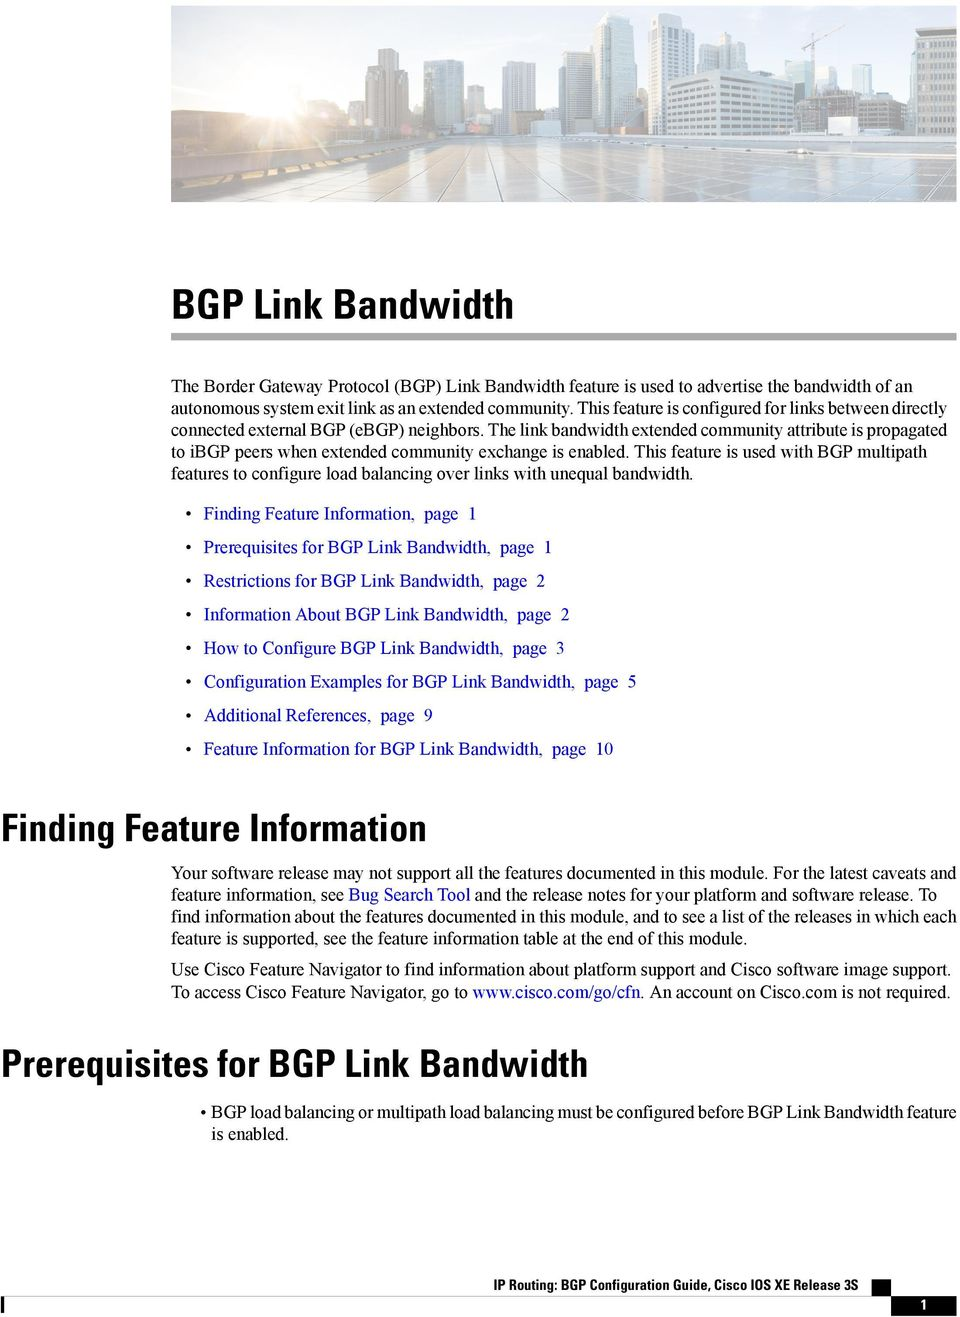 The link bandwidth extended community attribute is propagated to ibgp peers when extended community exchange is enabled.